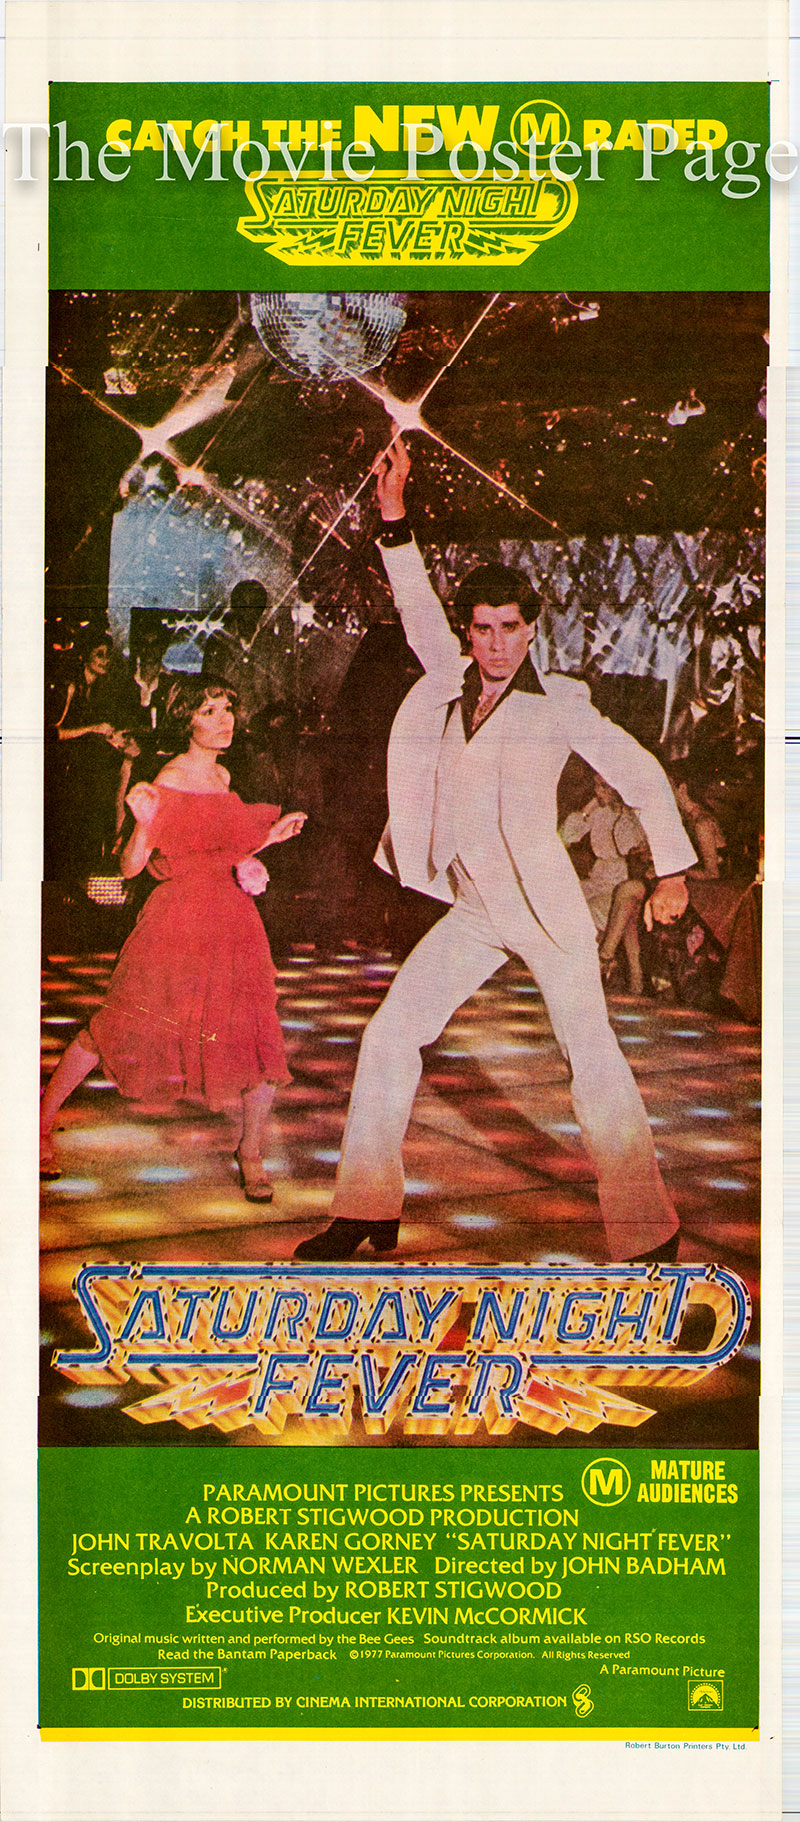 Pictured is an Australian daybill poster for the 1977 John Badham film Saturday Night Fever starring John Travolta as Tony Manero.